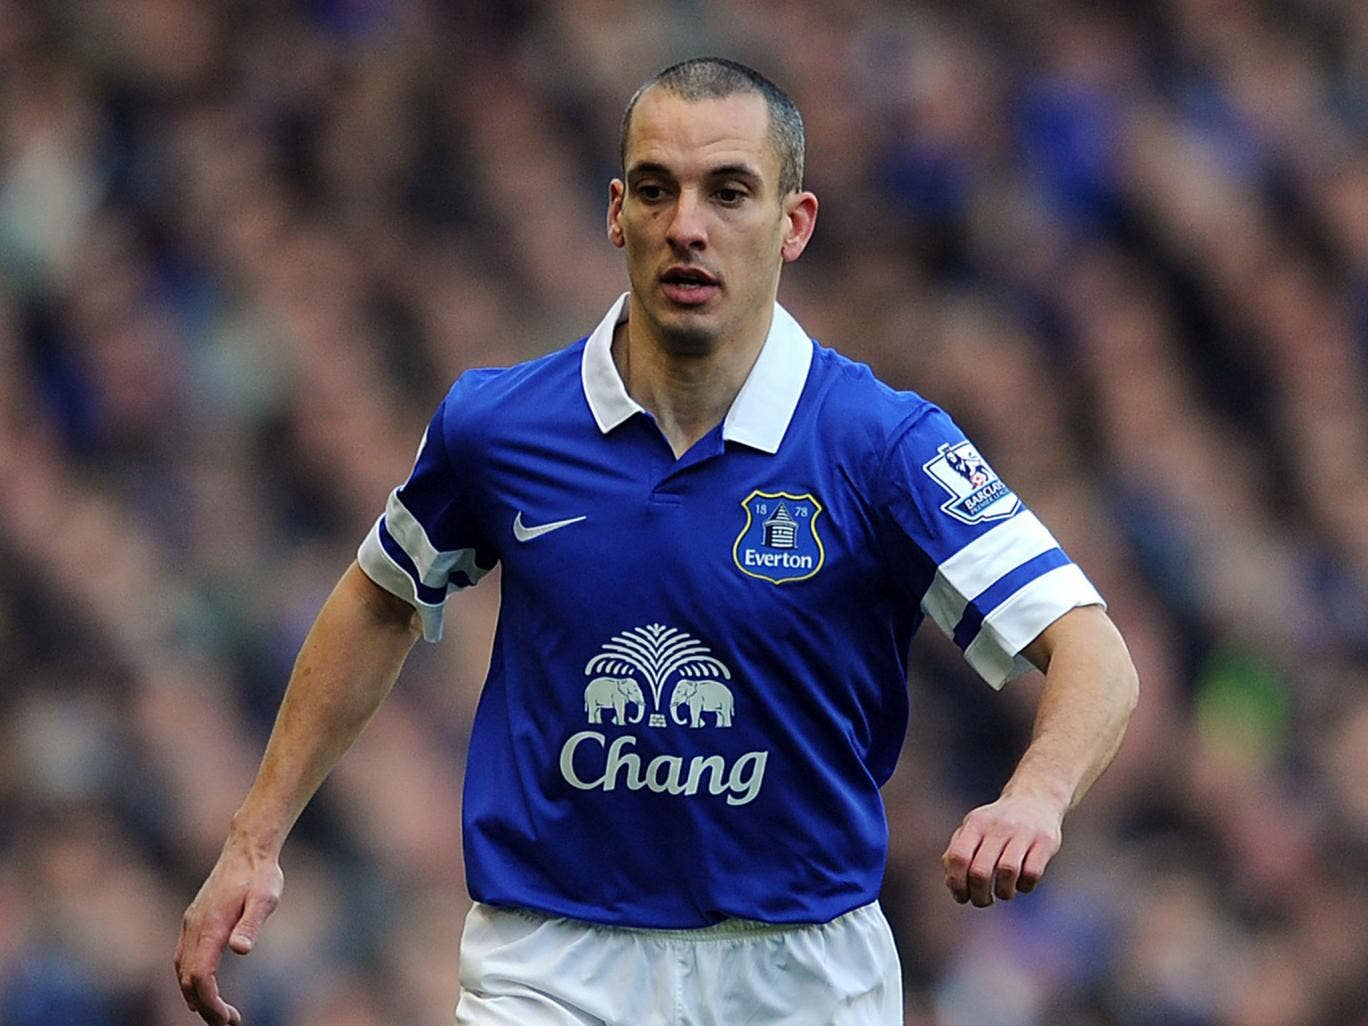 Leon Osman was a member of the Everton side that reached the FA Cup semi-finals in 2012, only to be knocked out by Liverpool having taken the lead